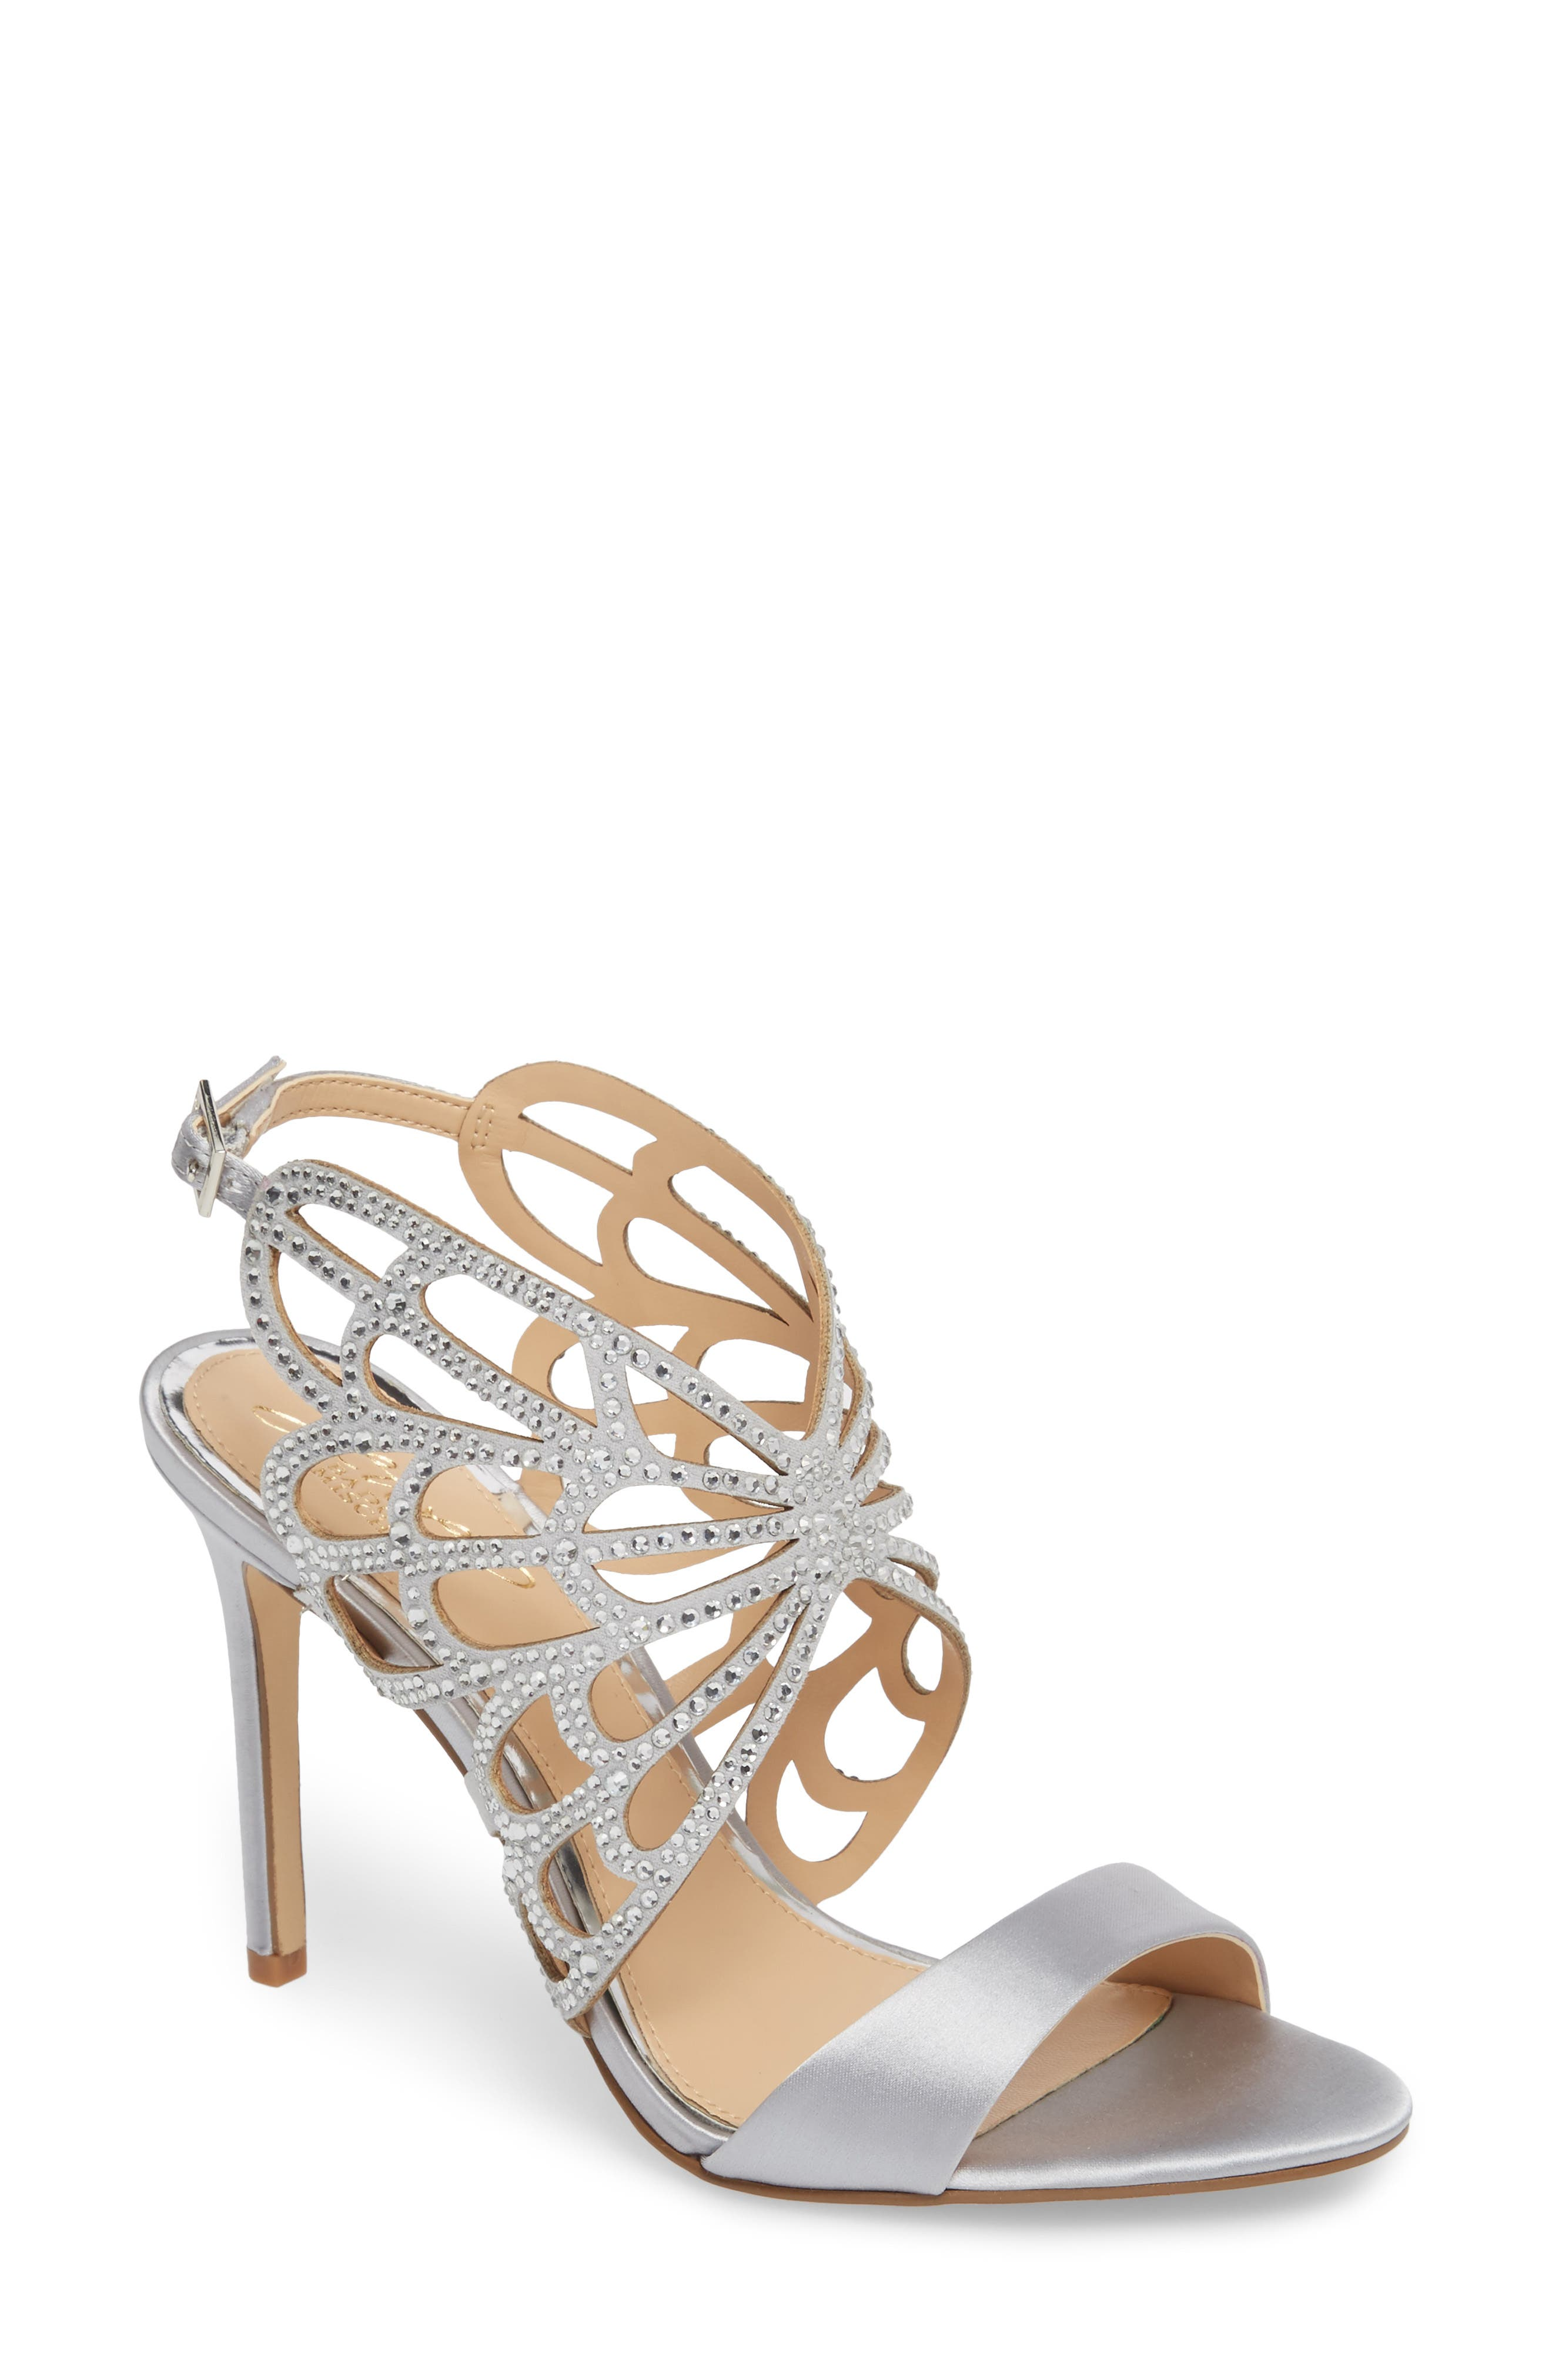 Taresa Crystal Embellished Butterfly Sandal,                         Main,                         color, Silver Satin